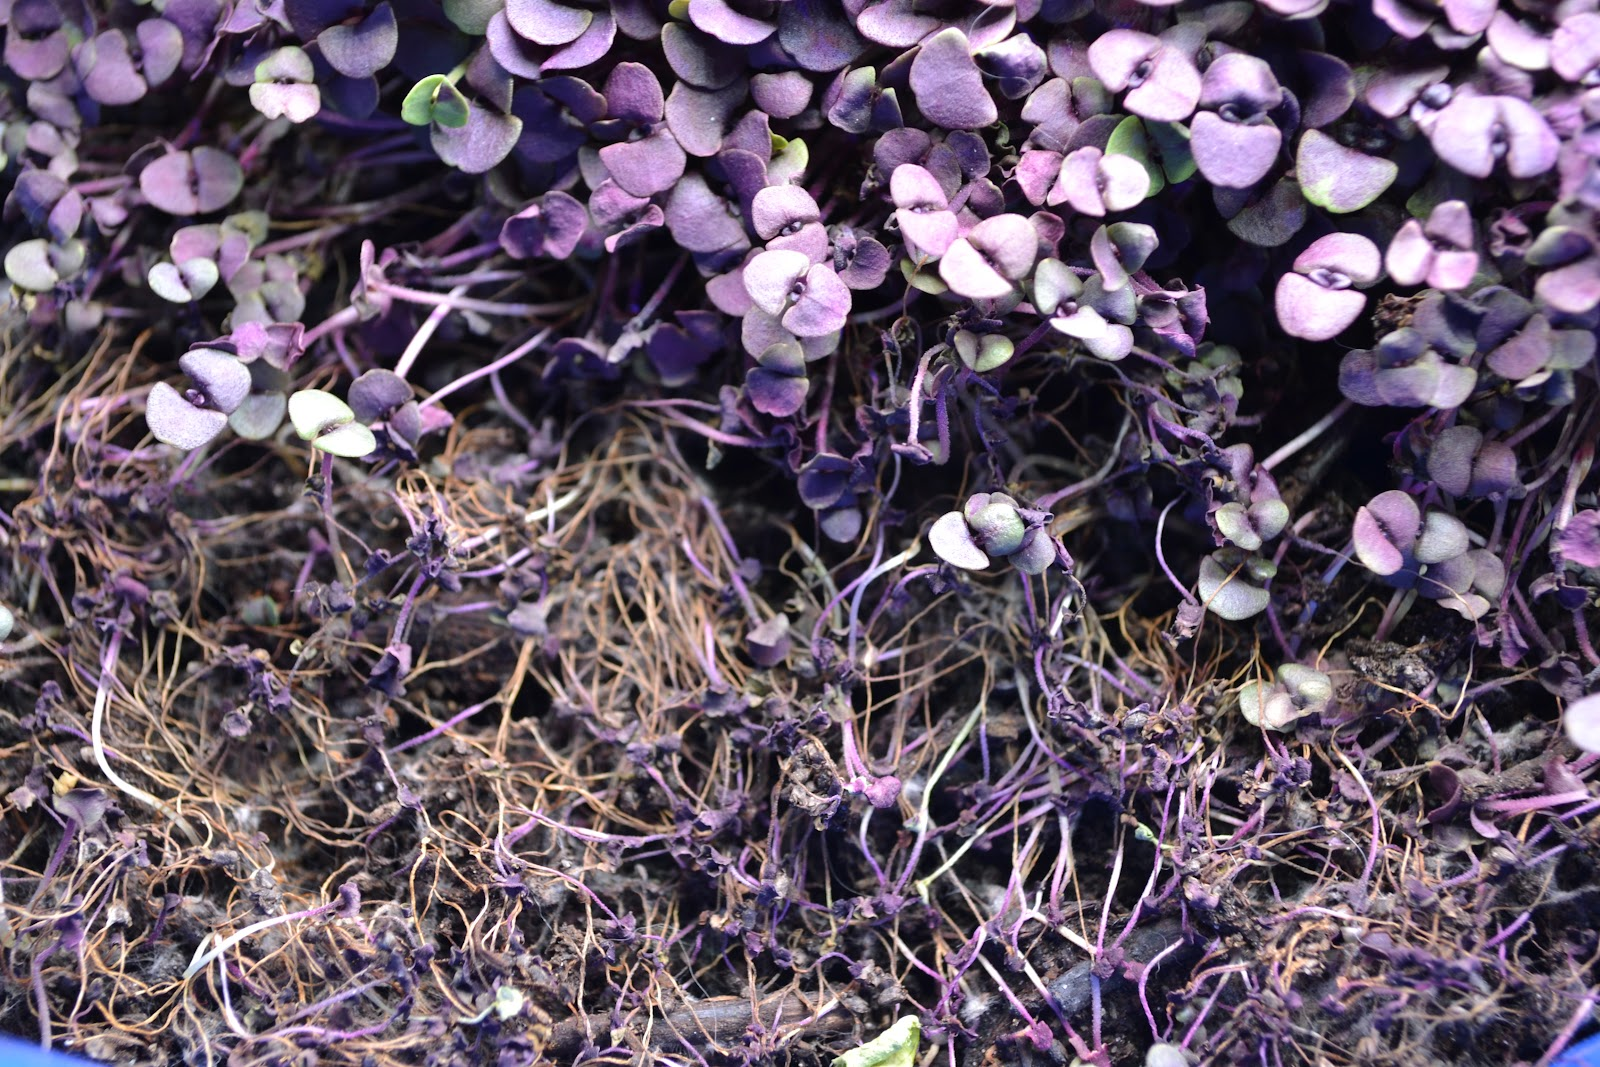 Purple Basil sprouts that have dried out are shown in this file photo.